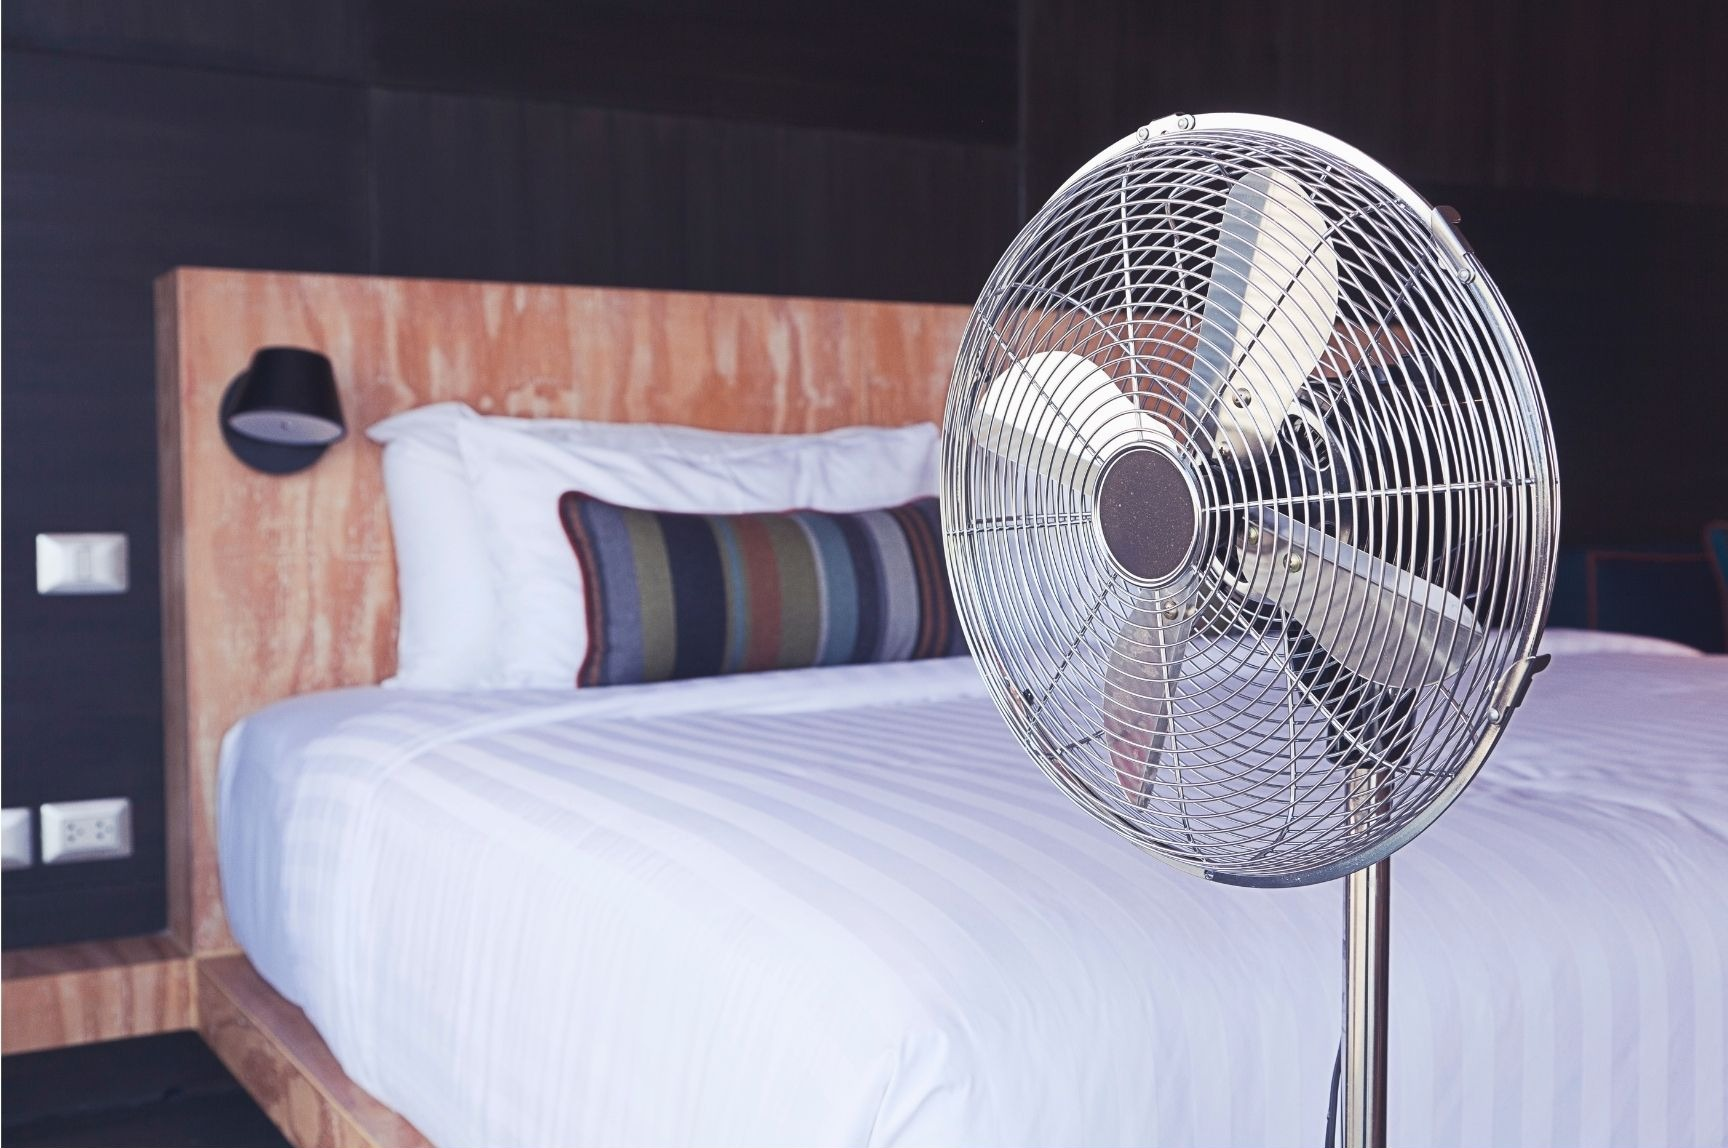 Benefits of sleeping with a fan